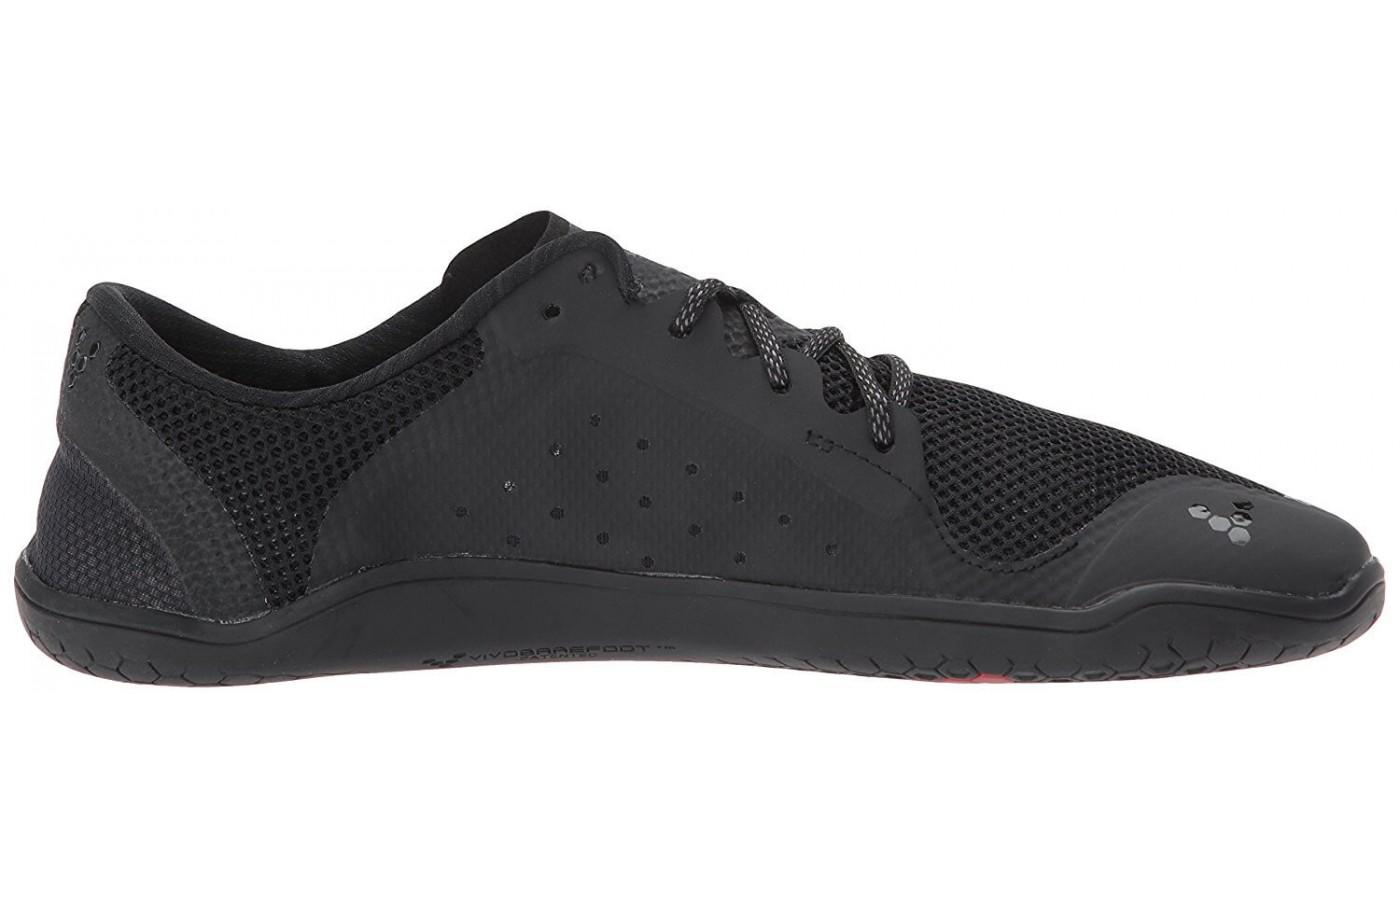 Zero heel drop is present in the Primus Lite midsole.